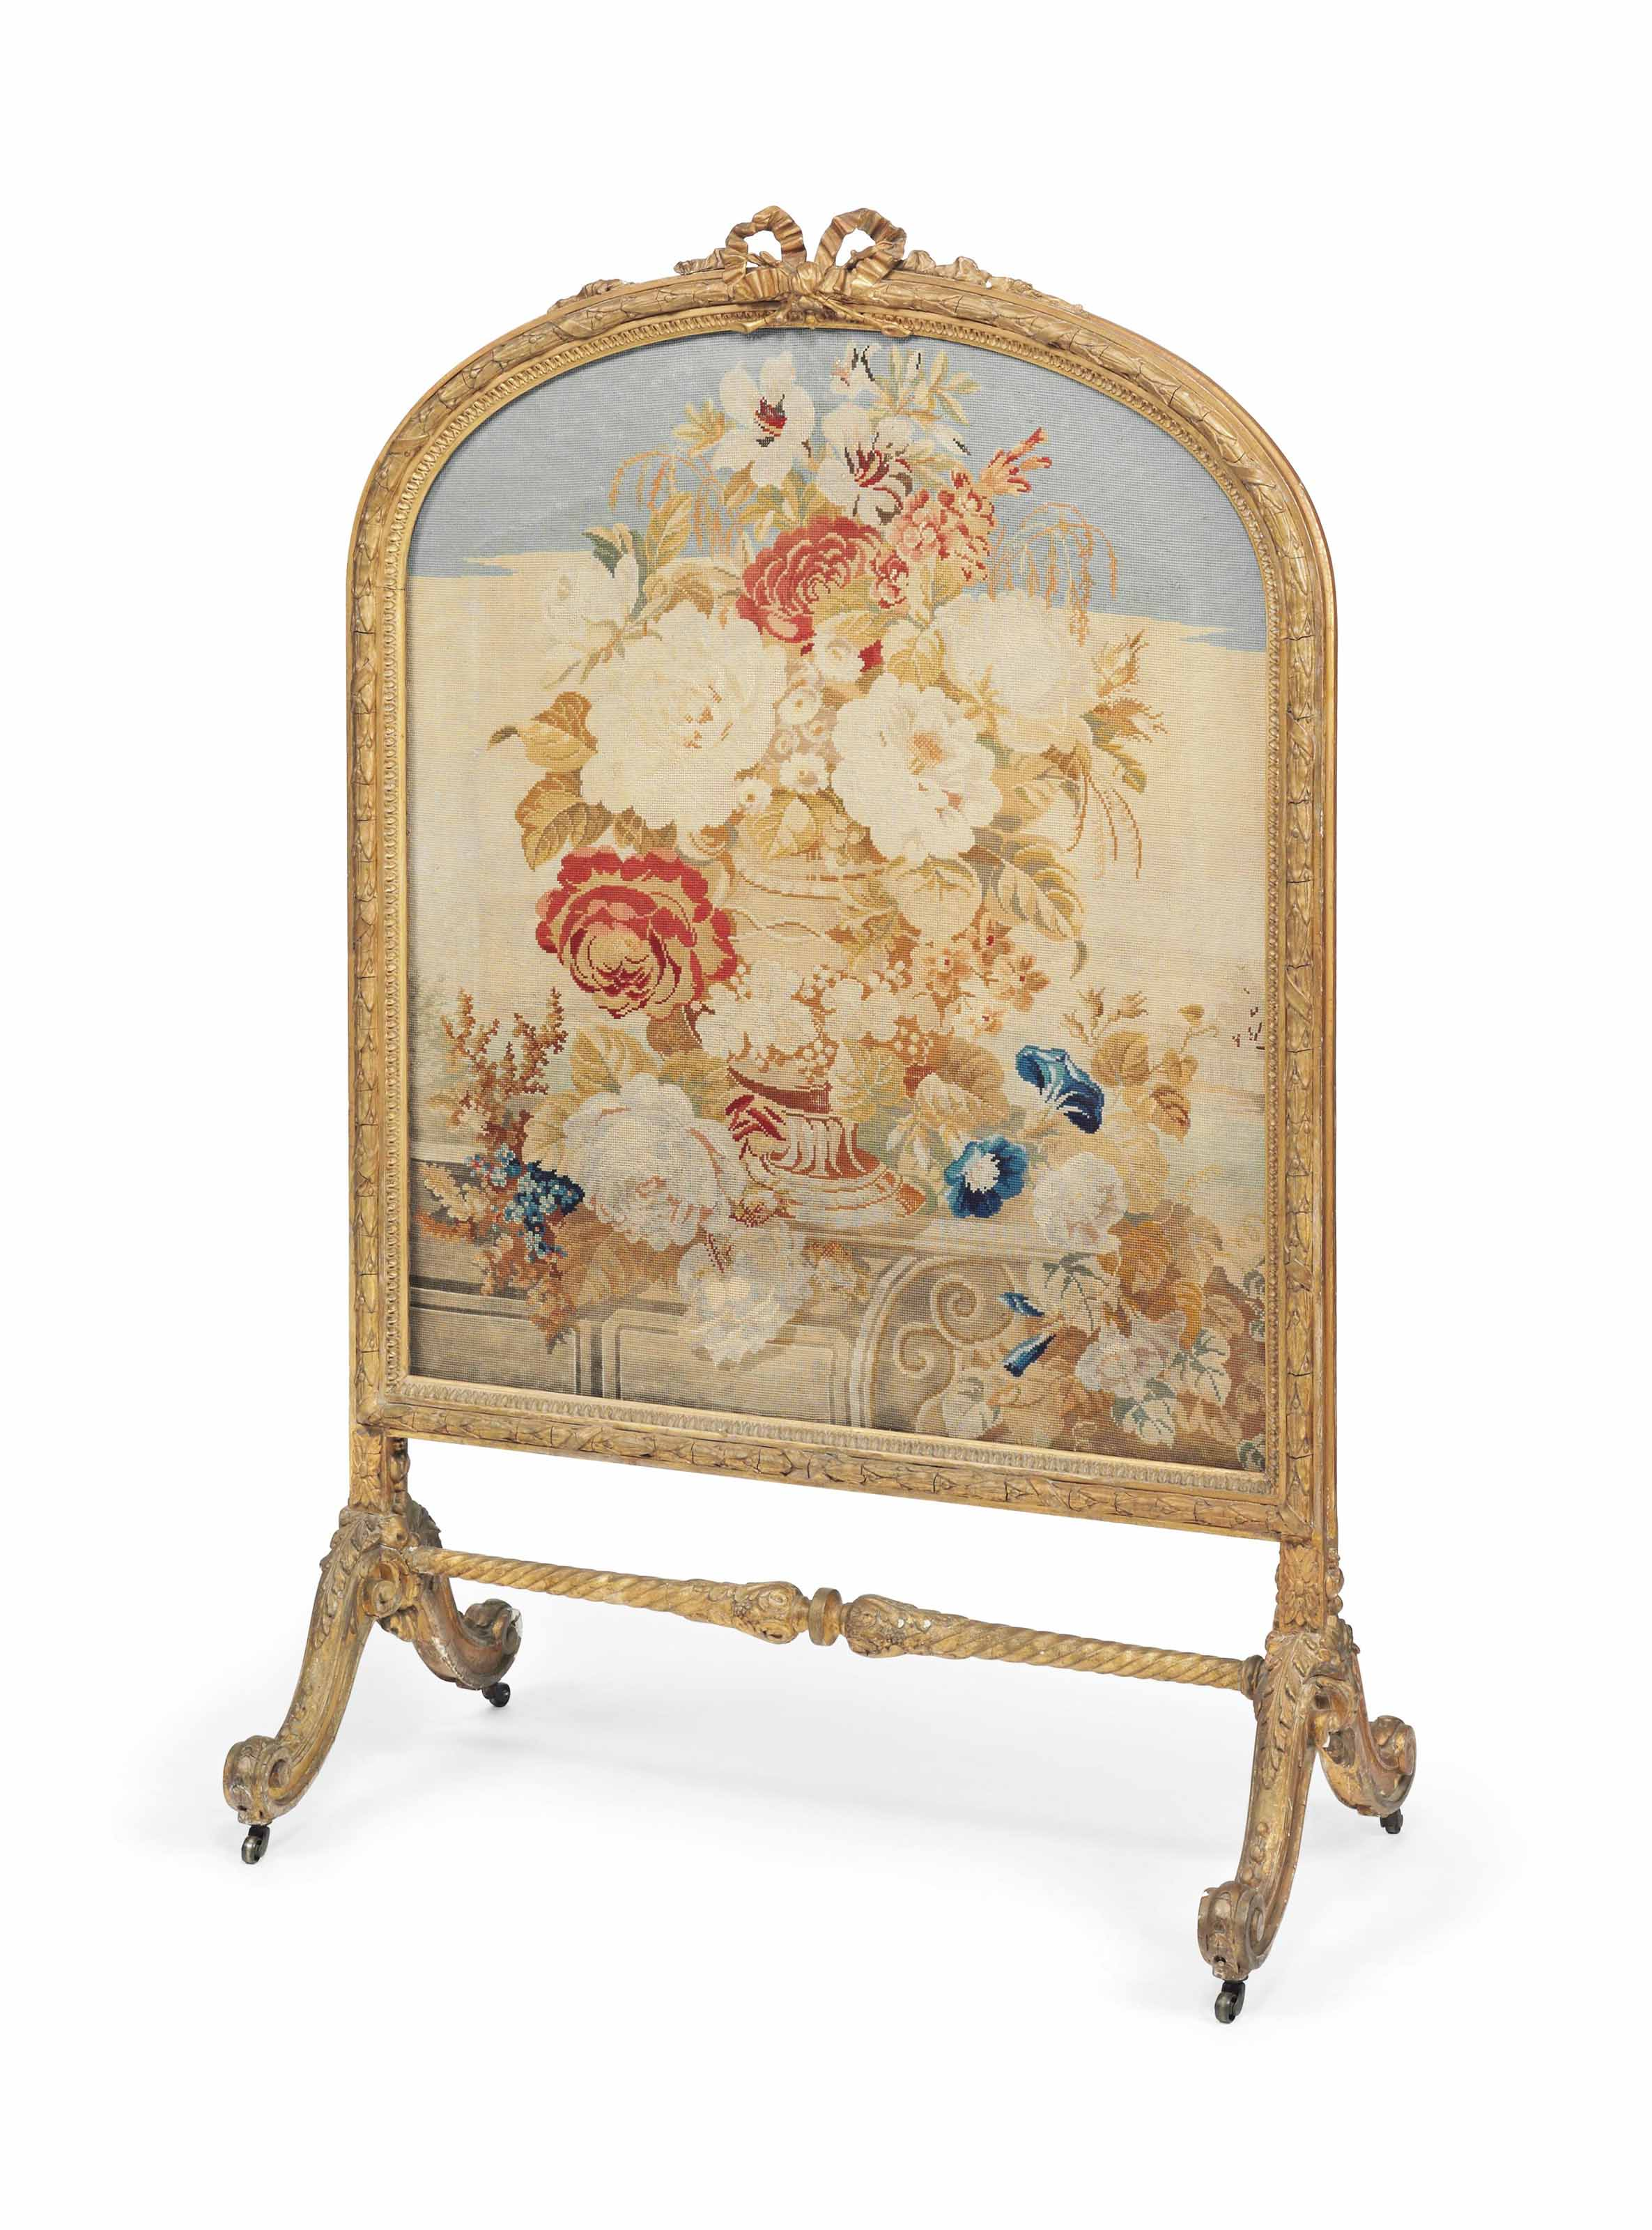 A VICTORIAN GILTWOOD COMPOSITION FIRE SCREEN